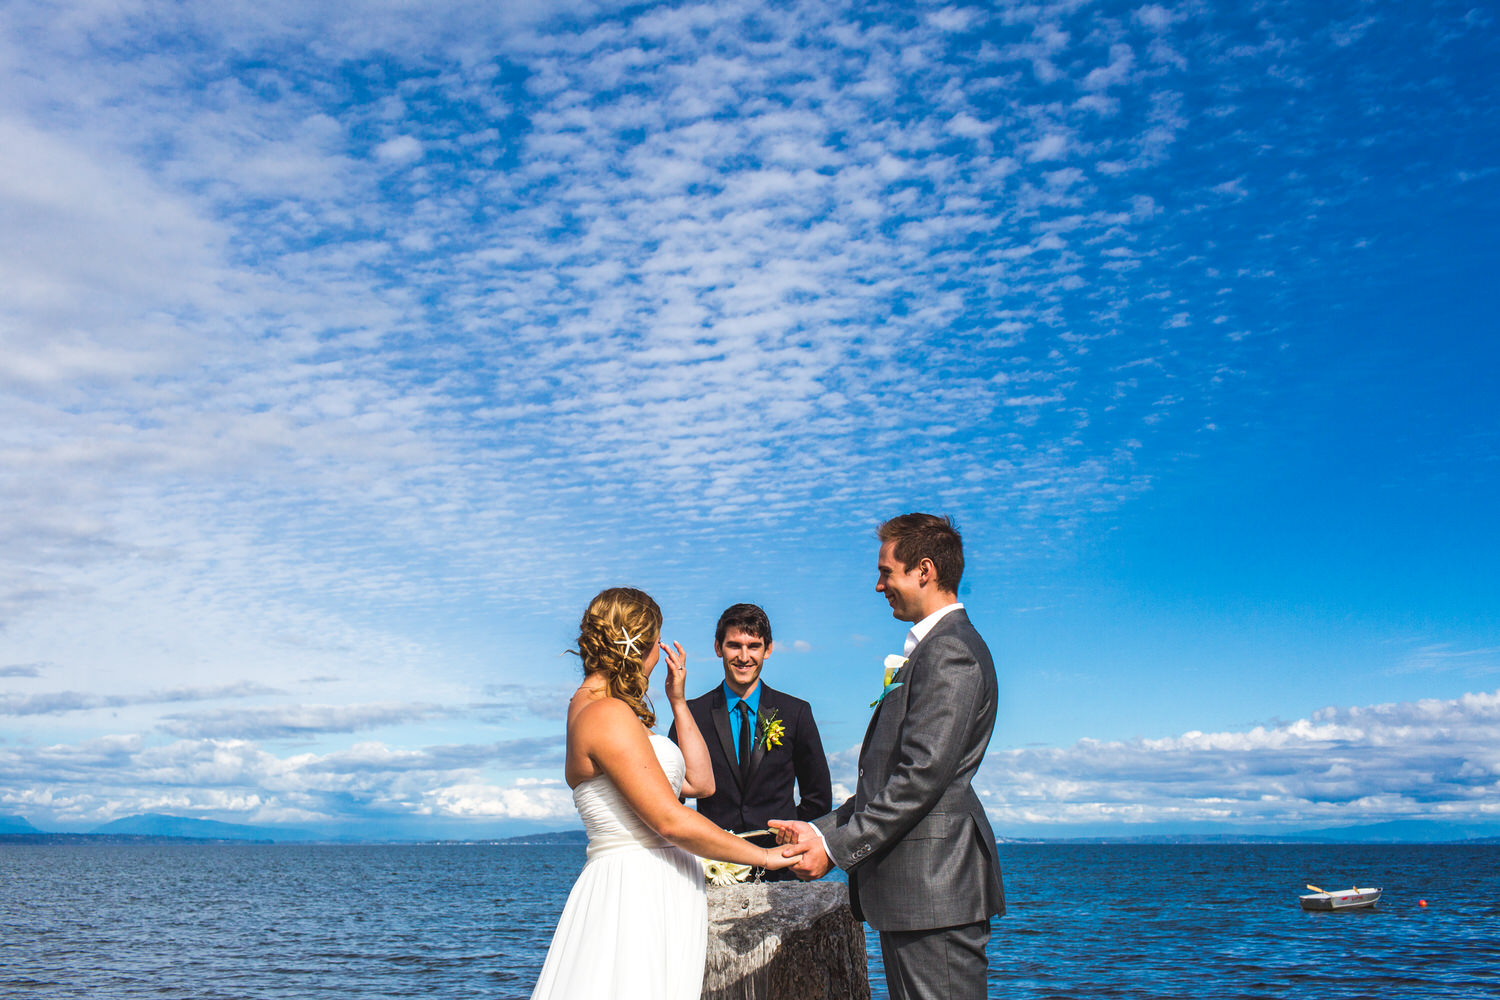 bride and groom next to ocean for beach wedding ceremony